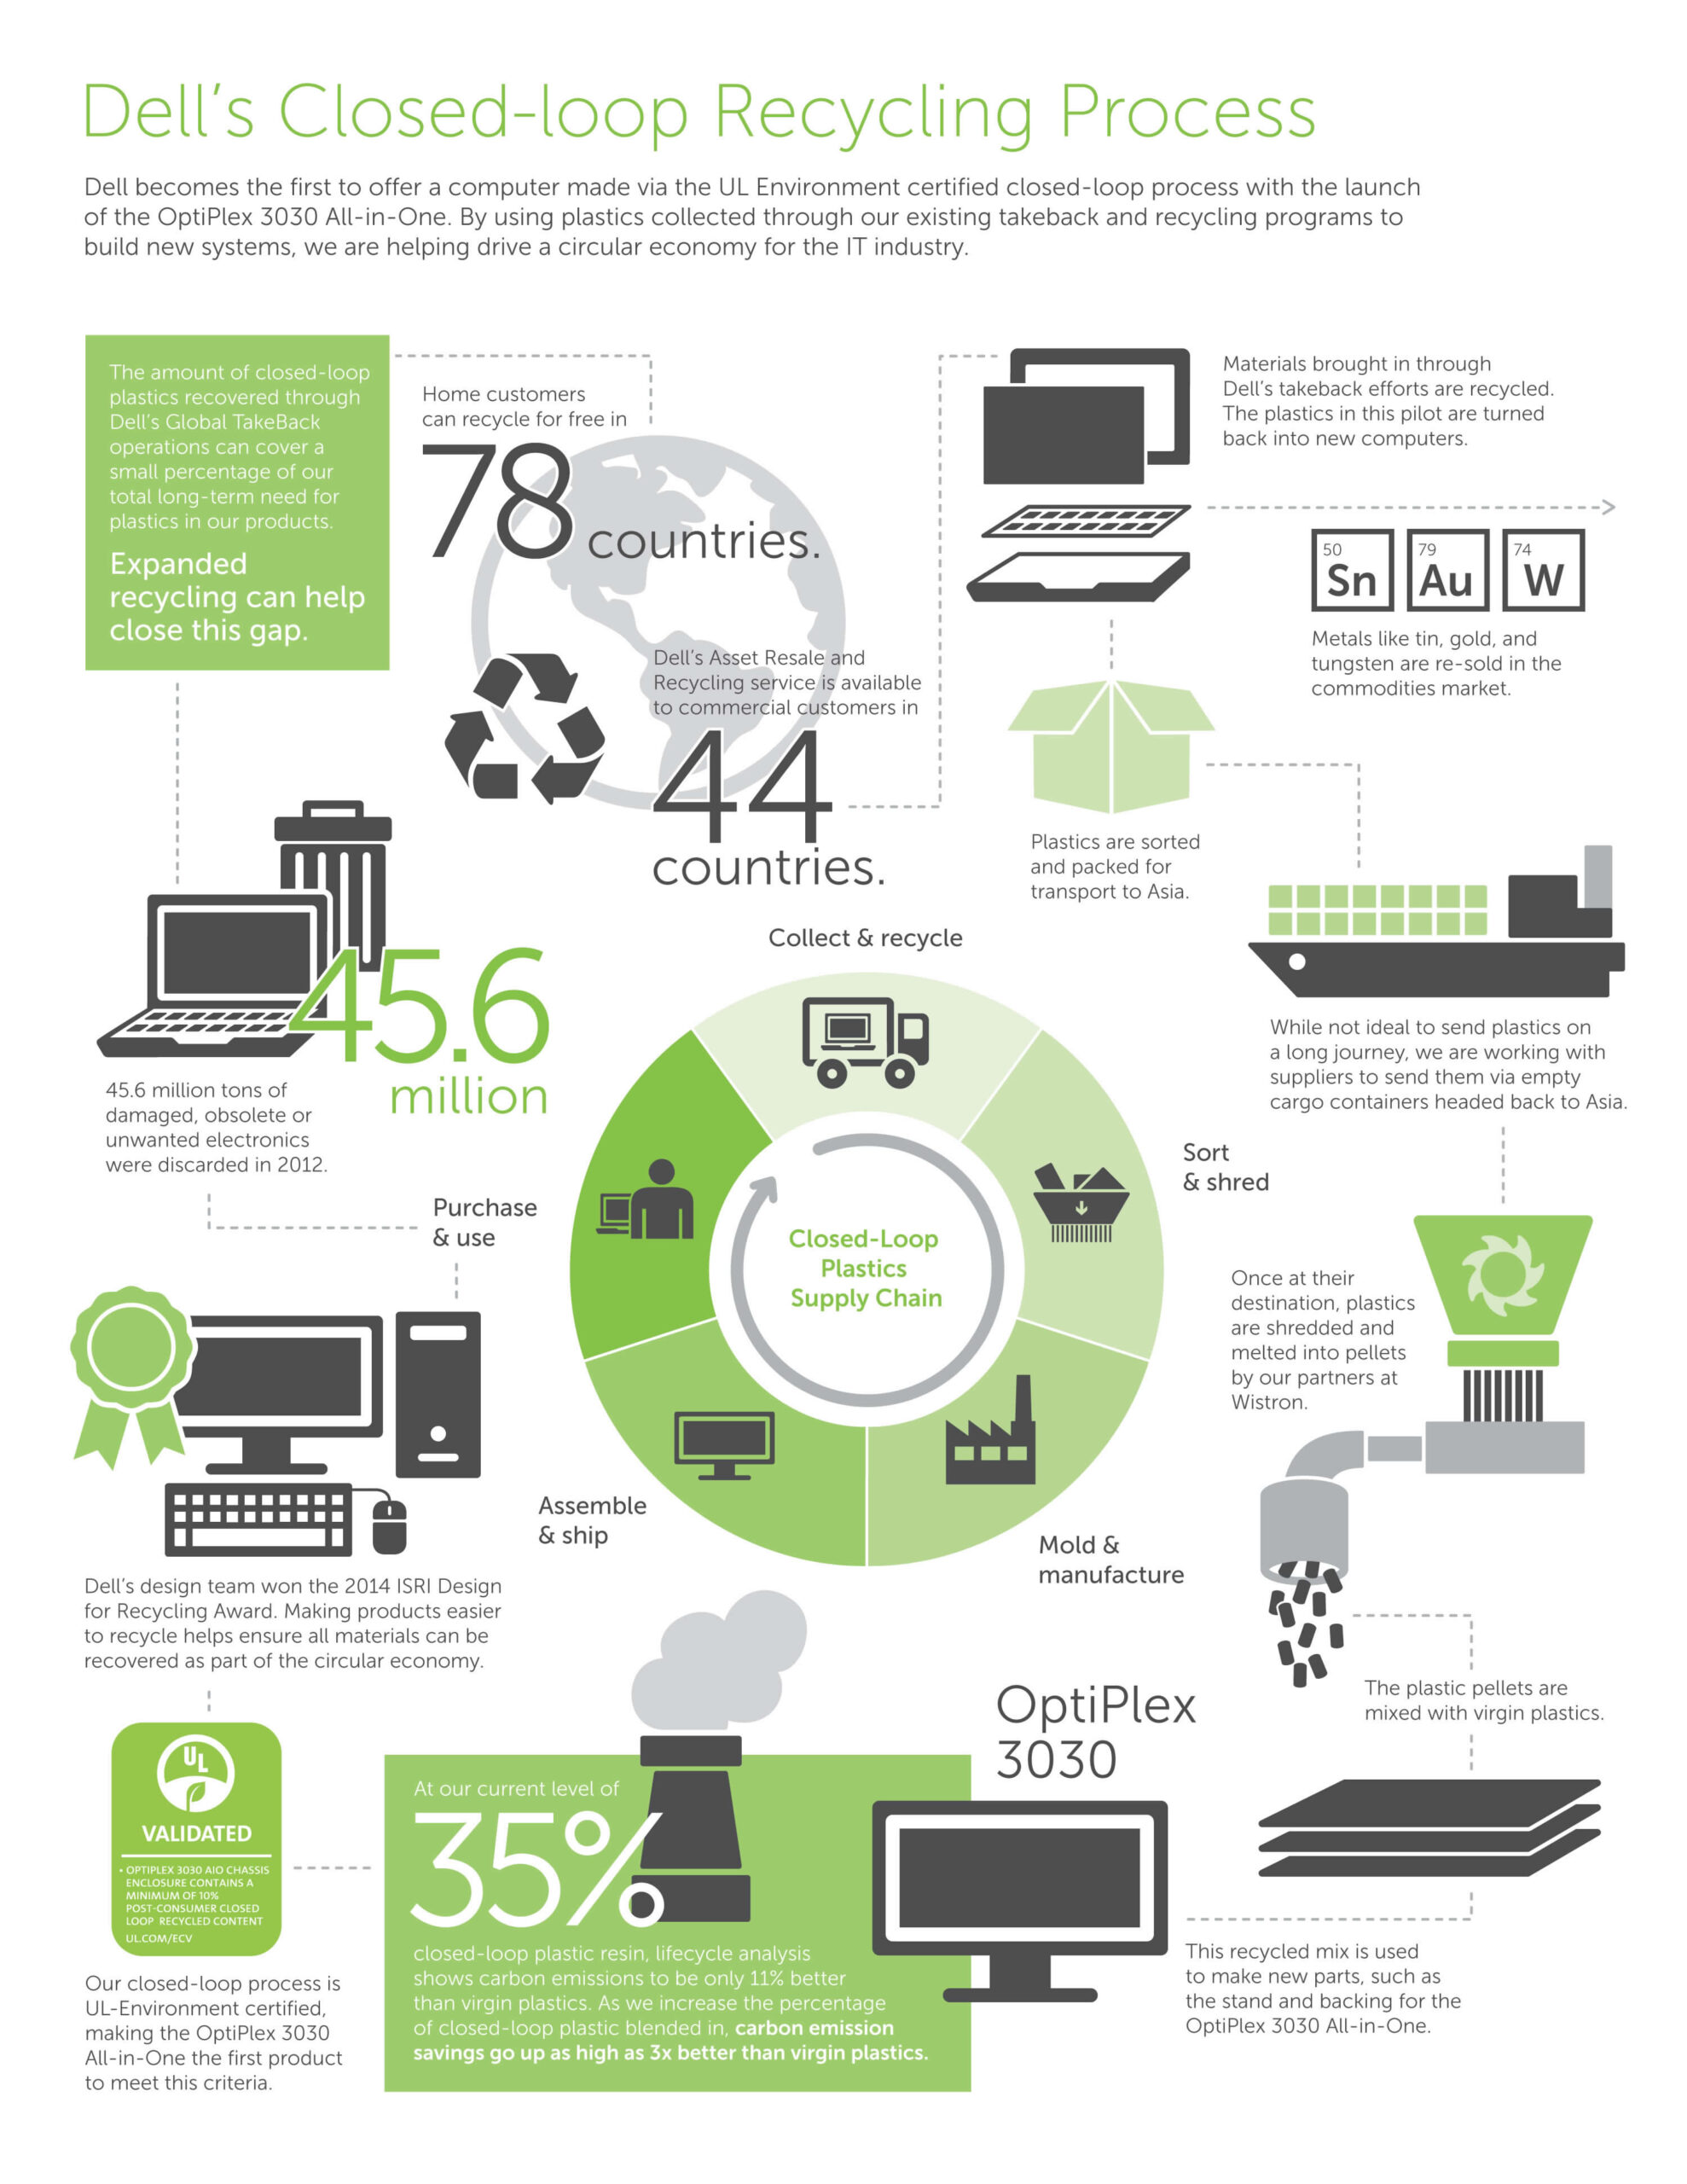 03. Dell's closed-loop recycling process